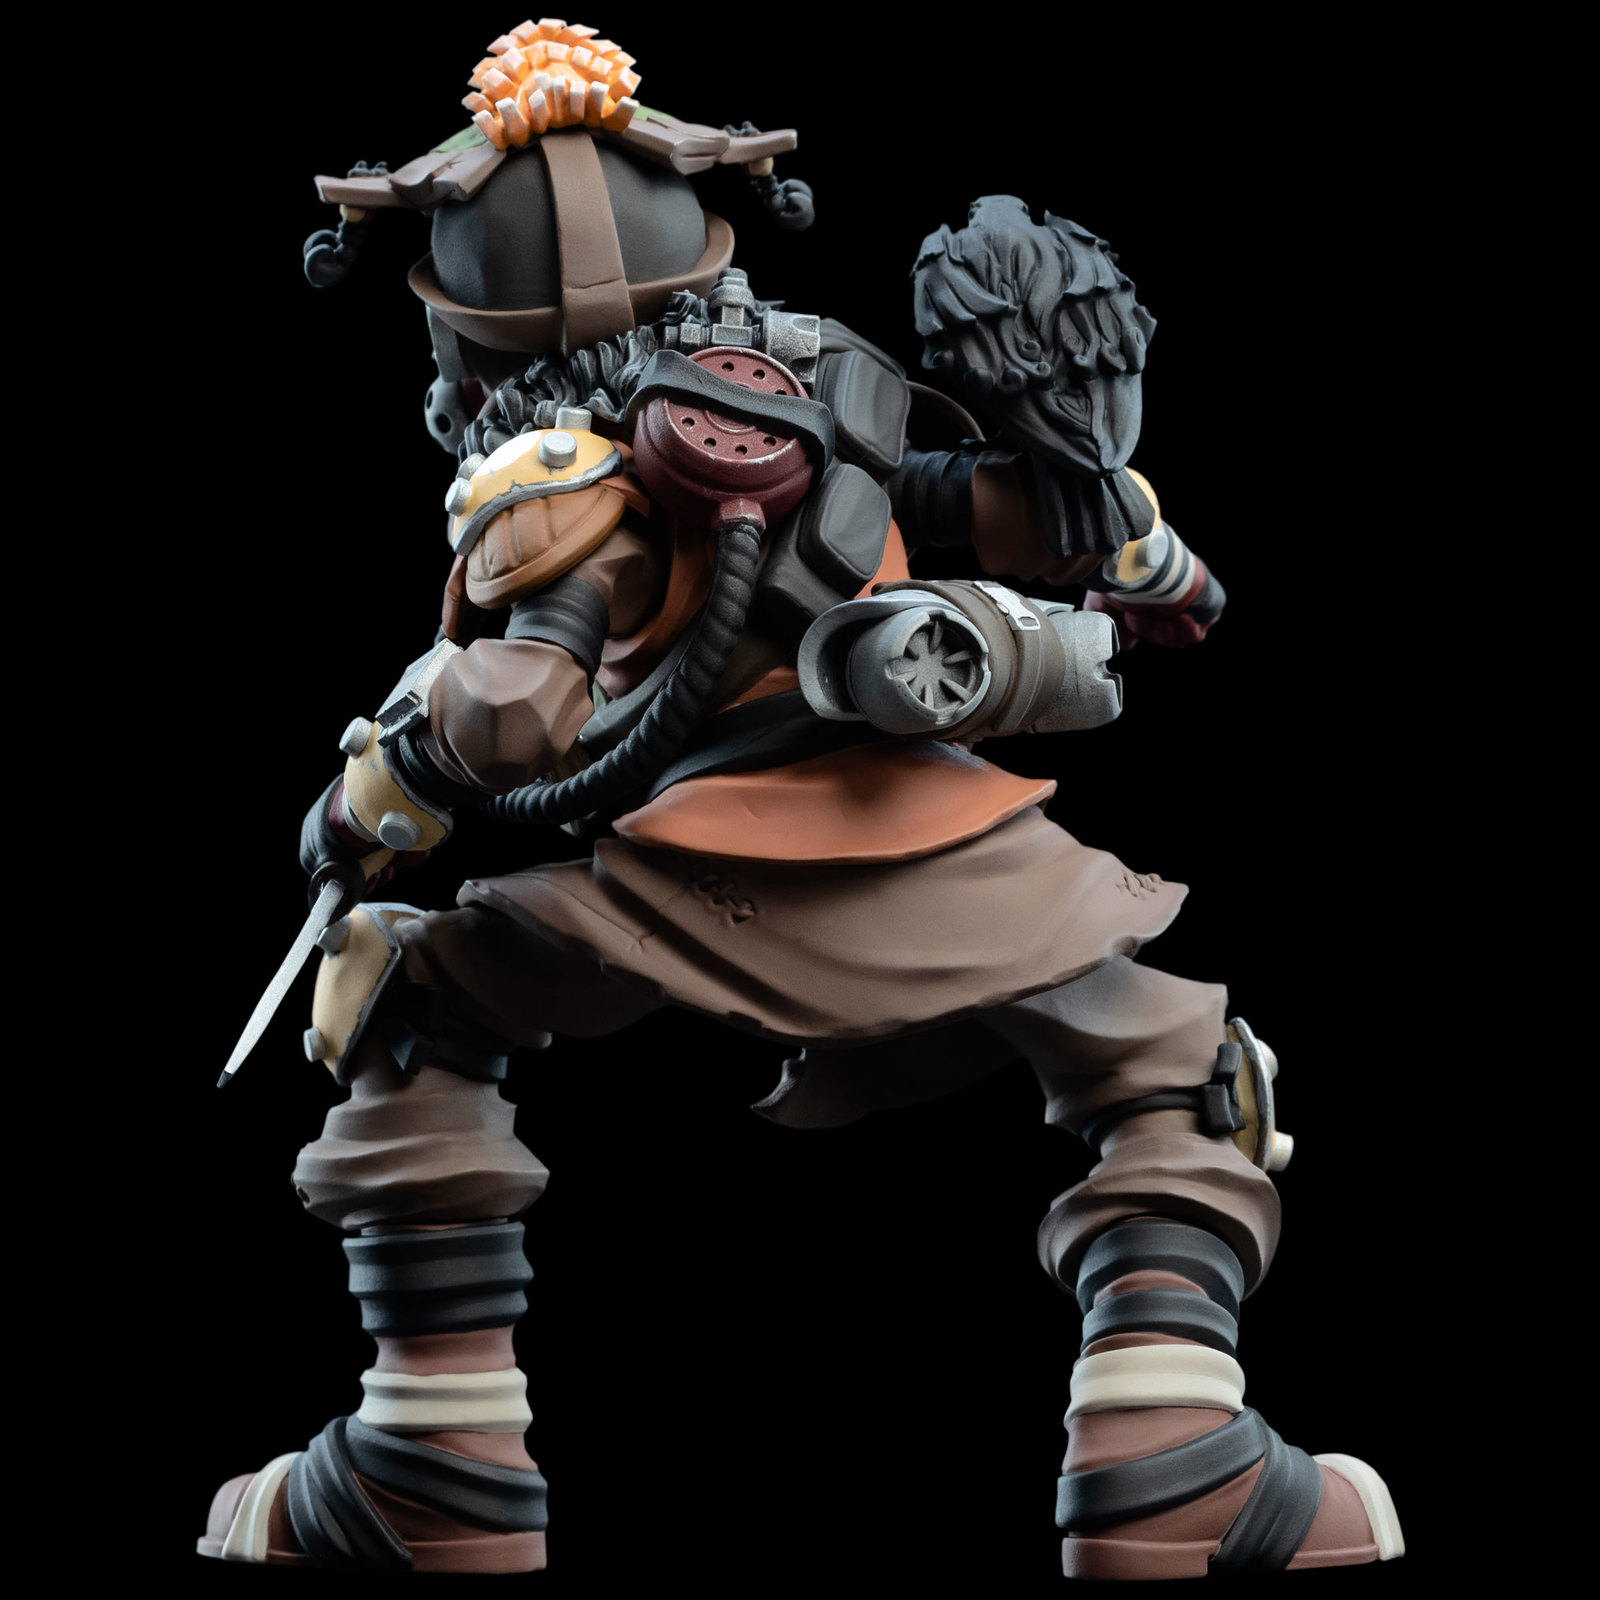 Apex Legends: Mini Epics - Bloodhound image